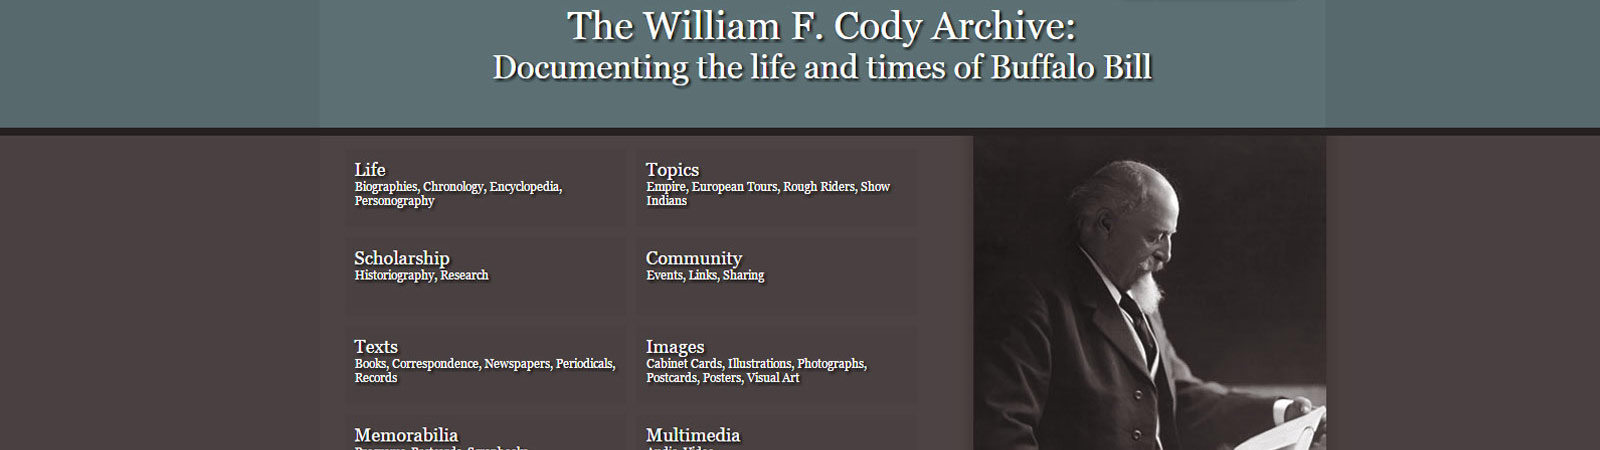 The William F. Cody Archive